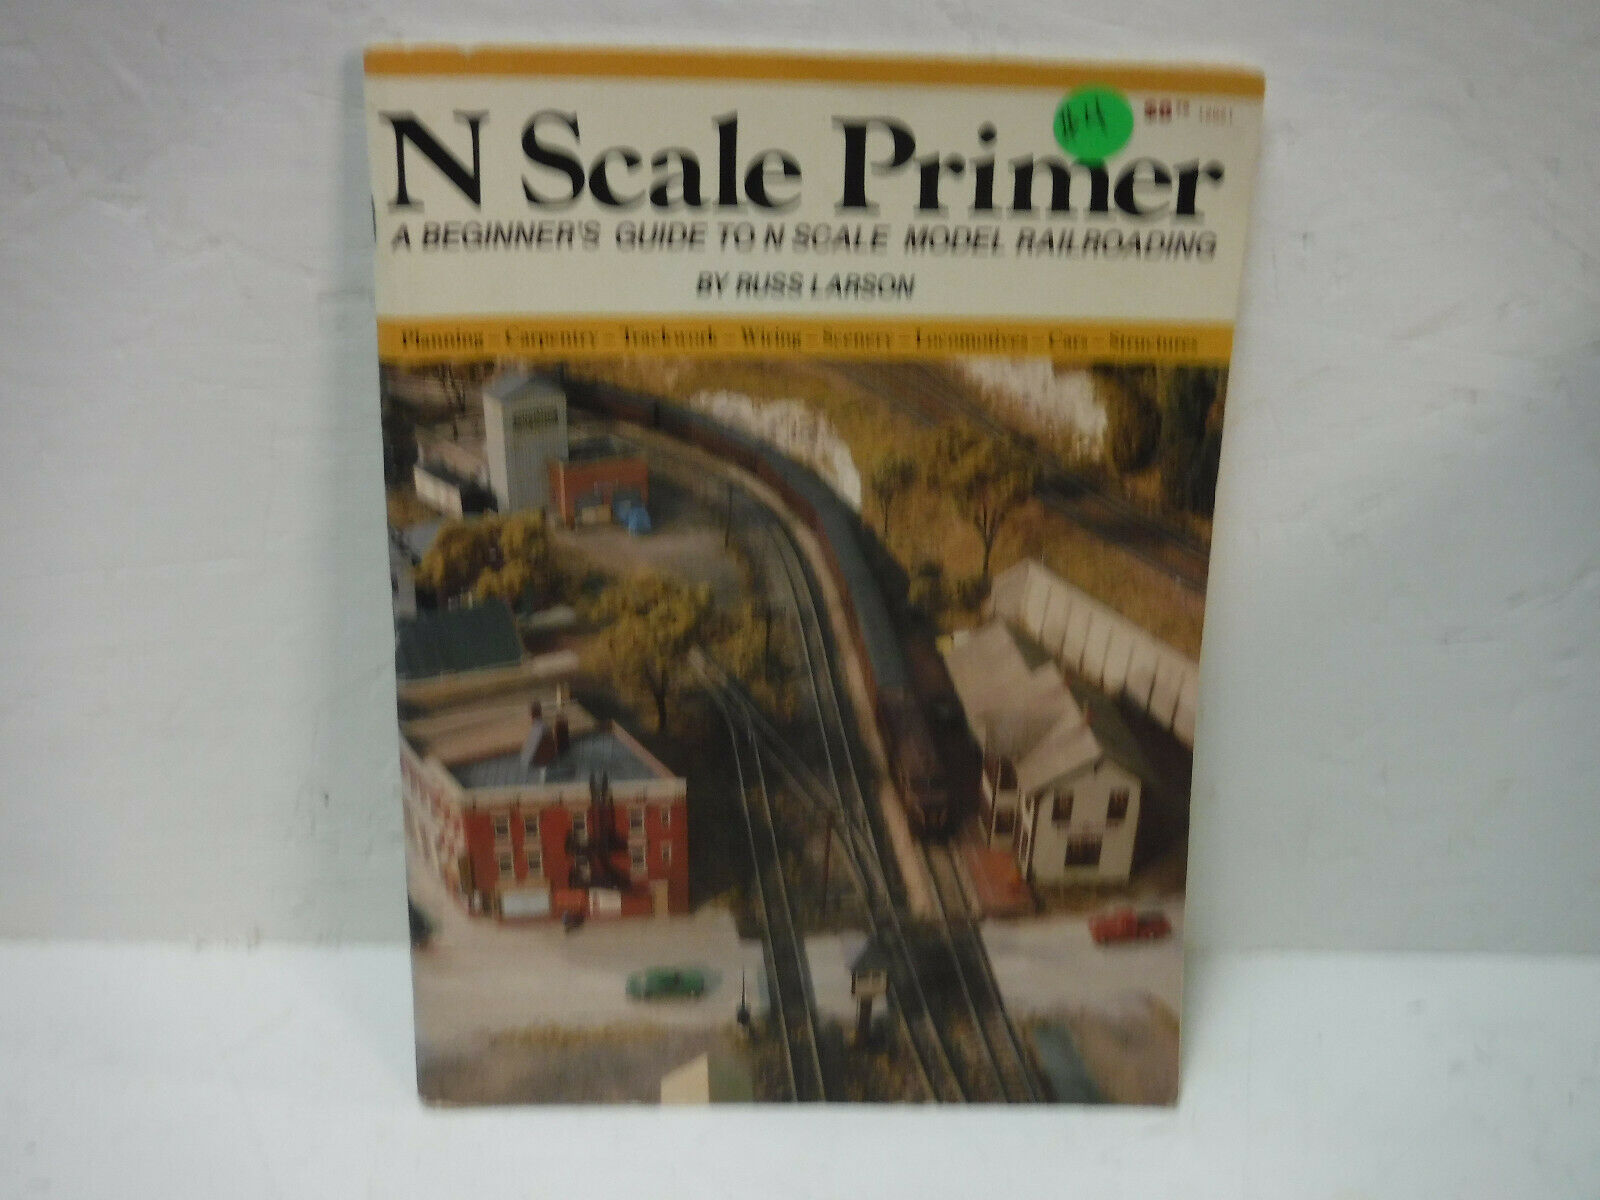 N Scale Primer-A Beginner s Guide To N Scale Model Railroading - $10.00